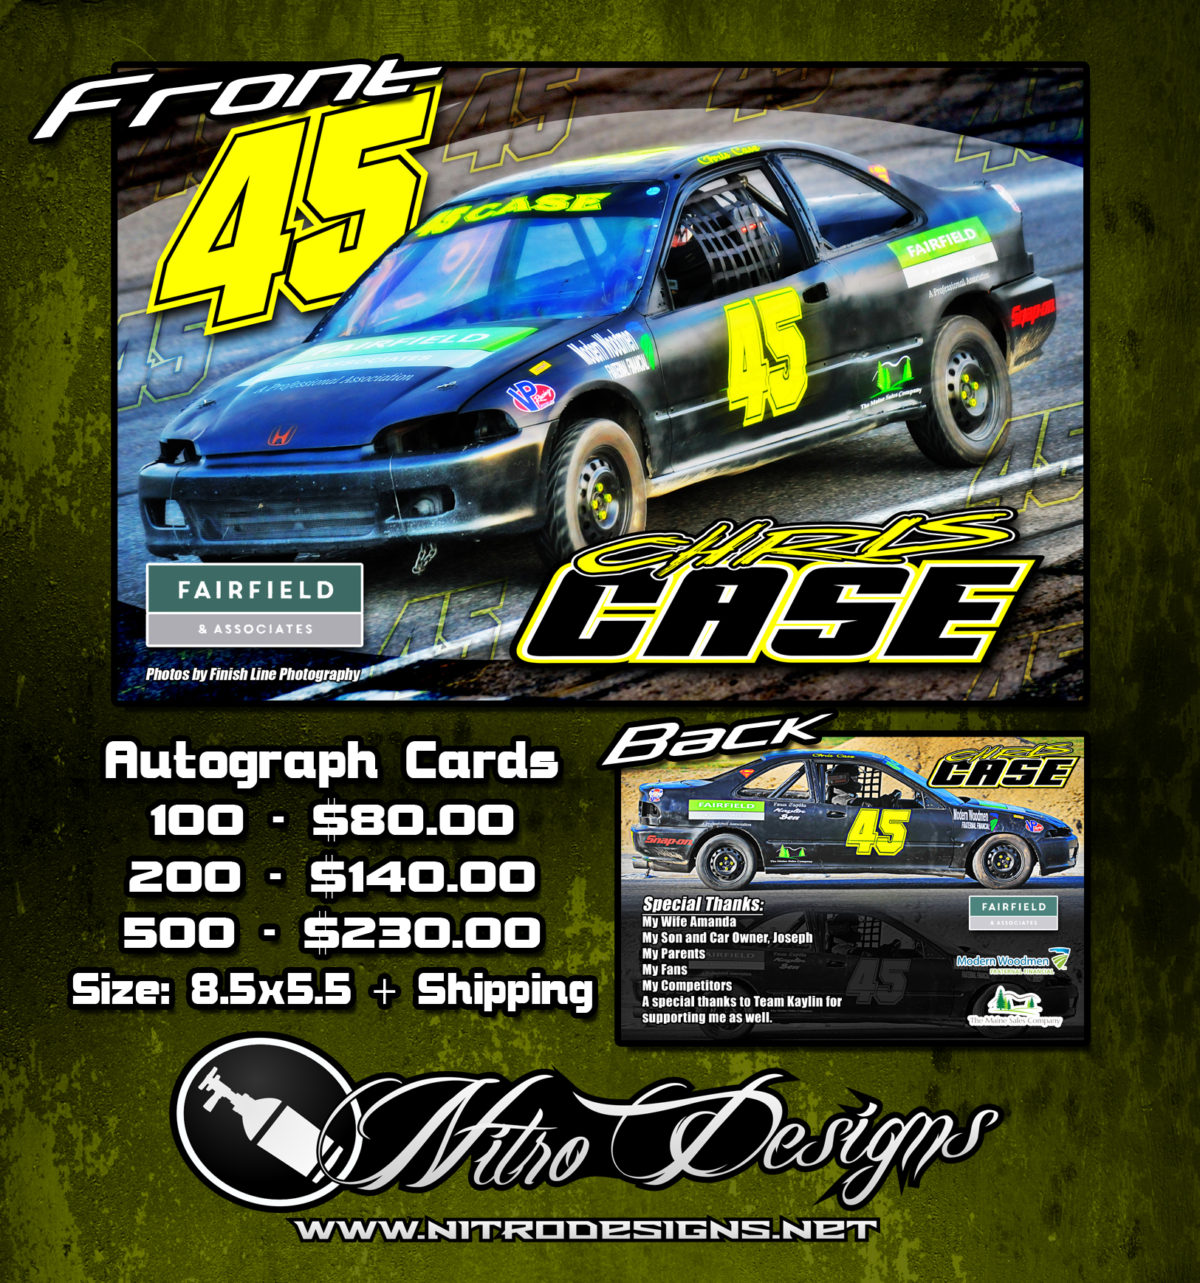 Chris Case Autograph Cards